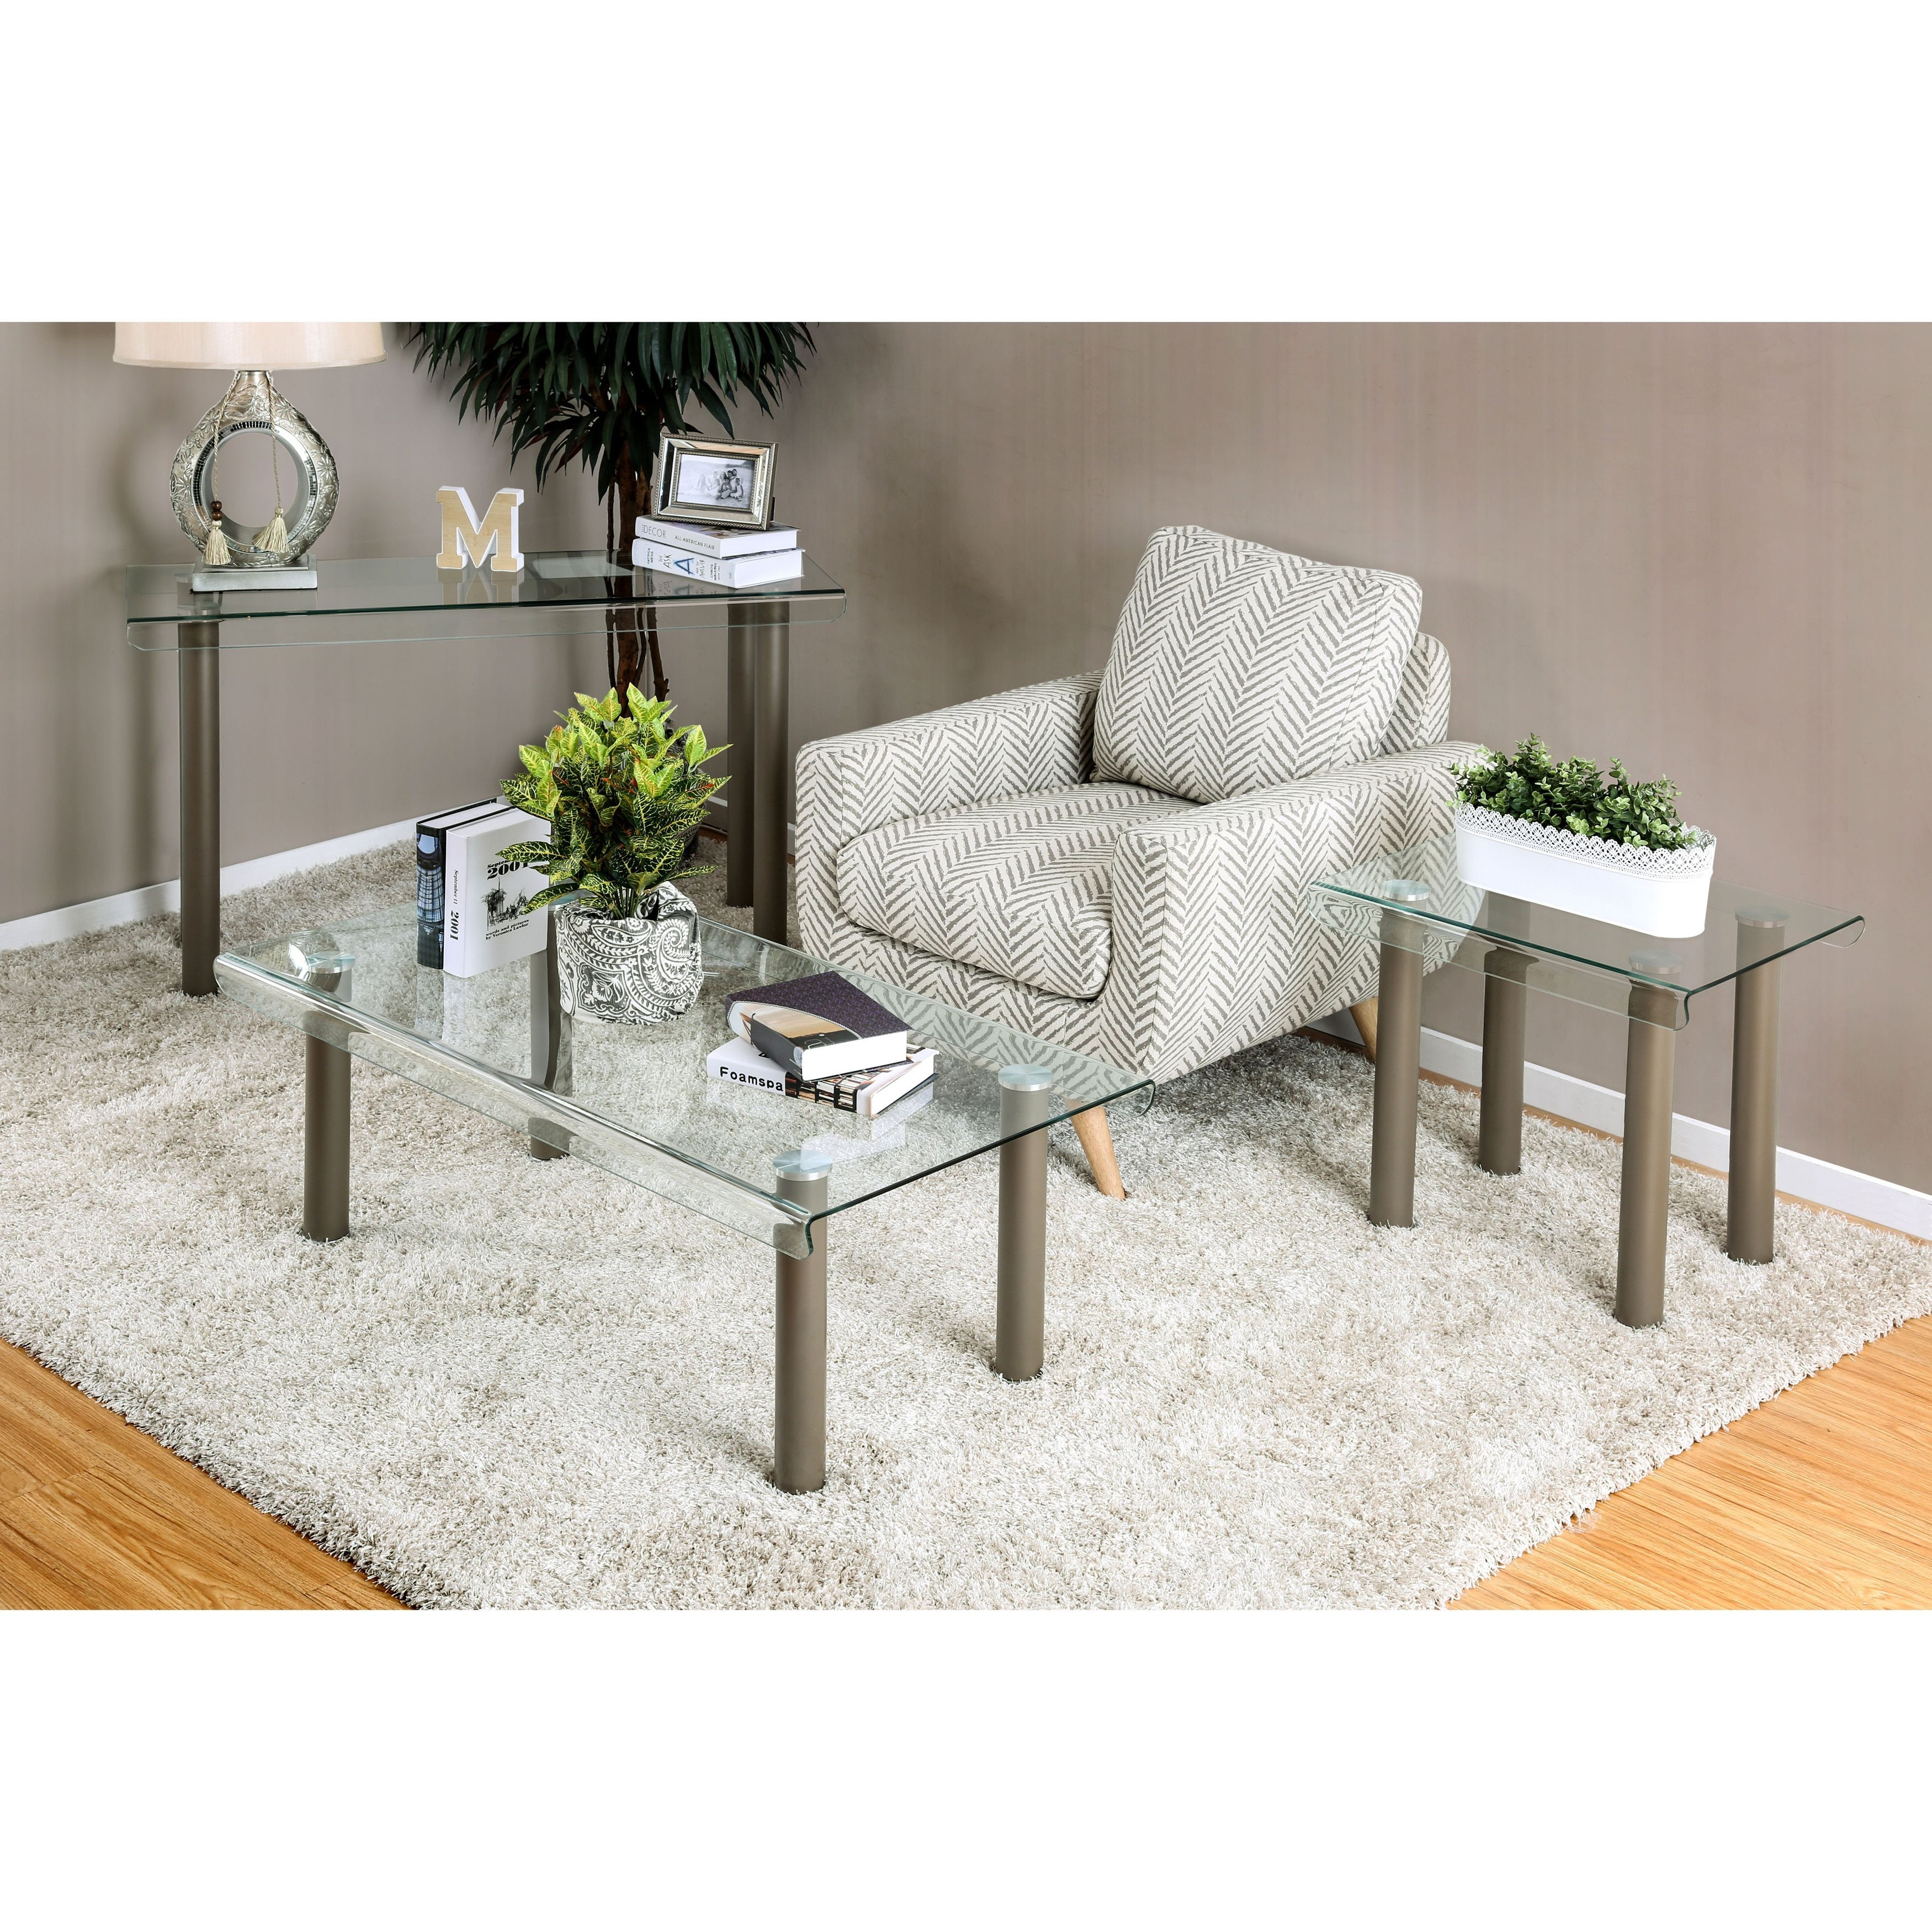 Overstock Com Online Shopping Bedding Furniture Electronics Jewelry Clothing More 3 Piece Coffee Table Set Coffee Table Coffee Table Setting [ 3500 x 3500 Pixel ]